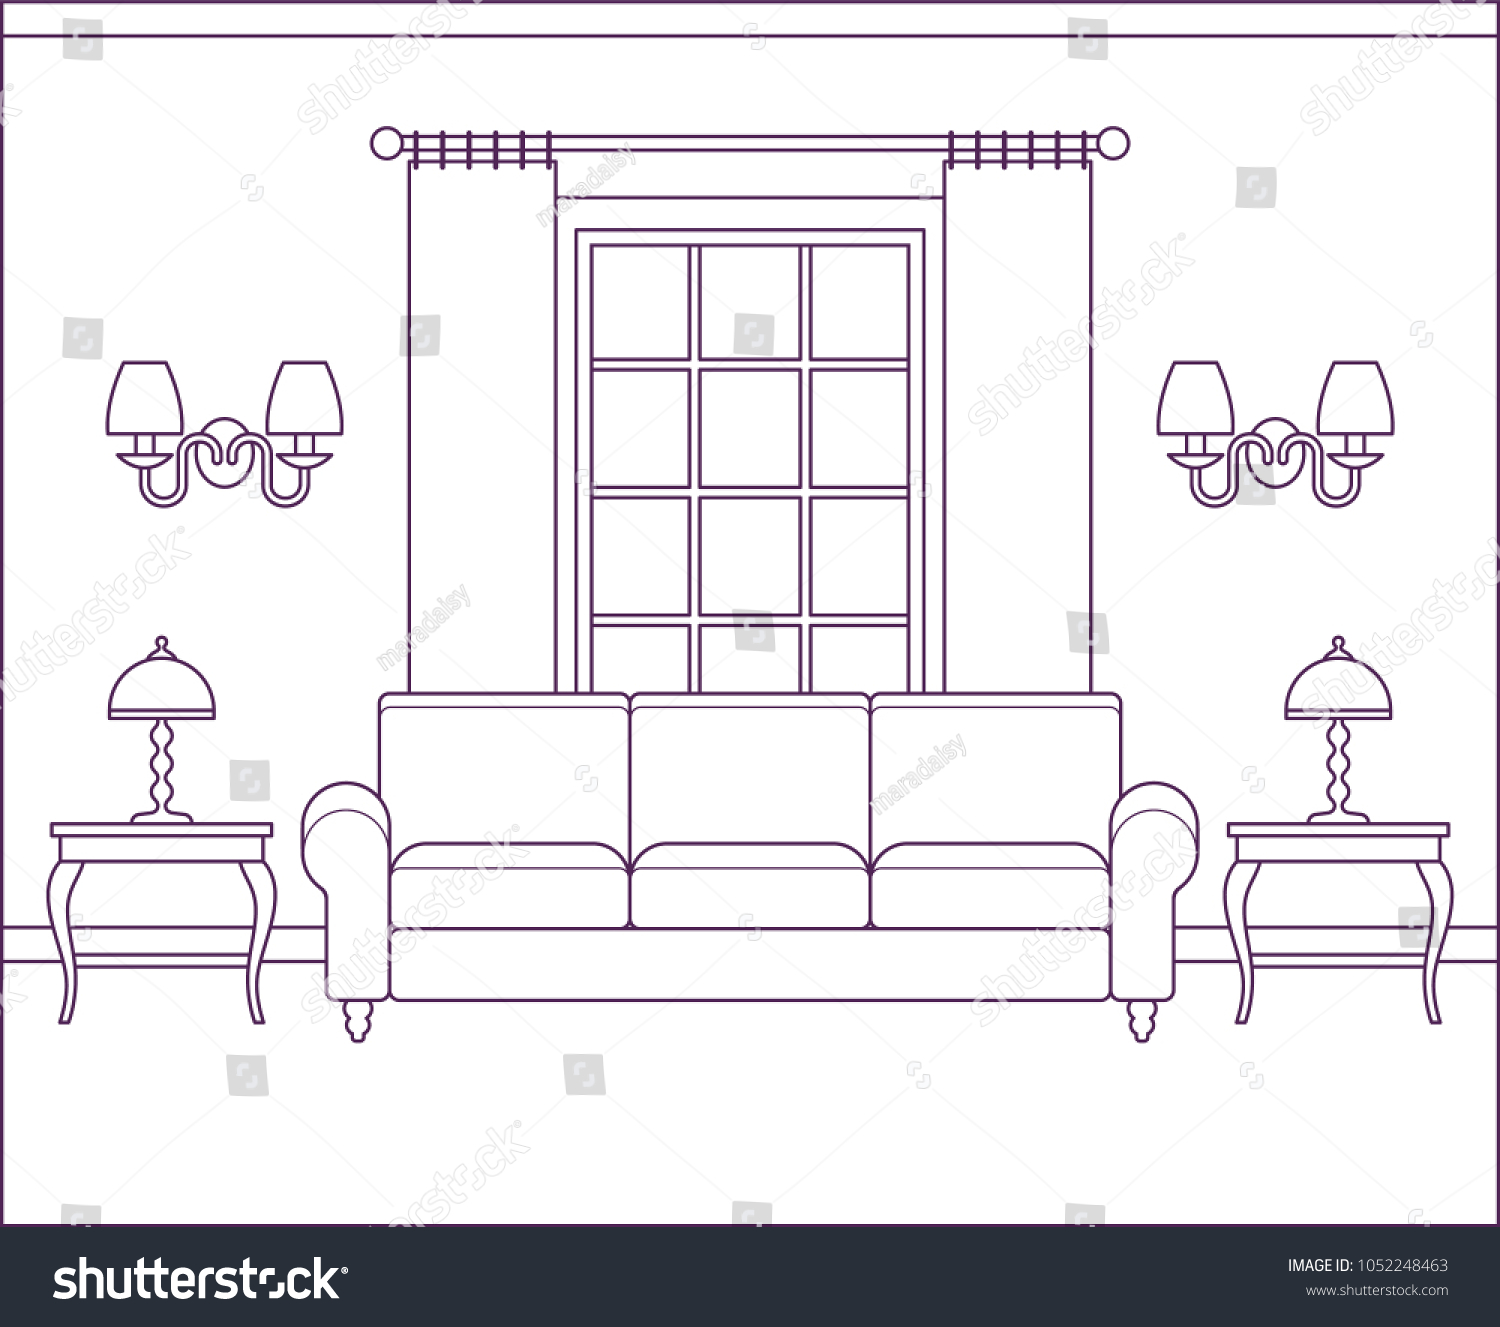 Room Interior Vector Living Room Home Stock Vector 1052248463 ...